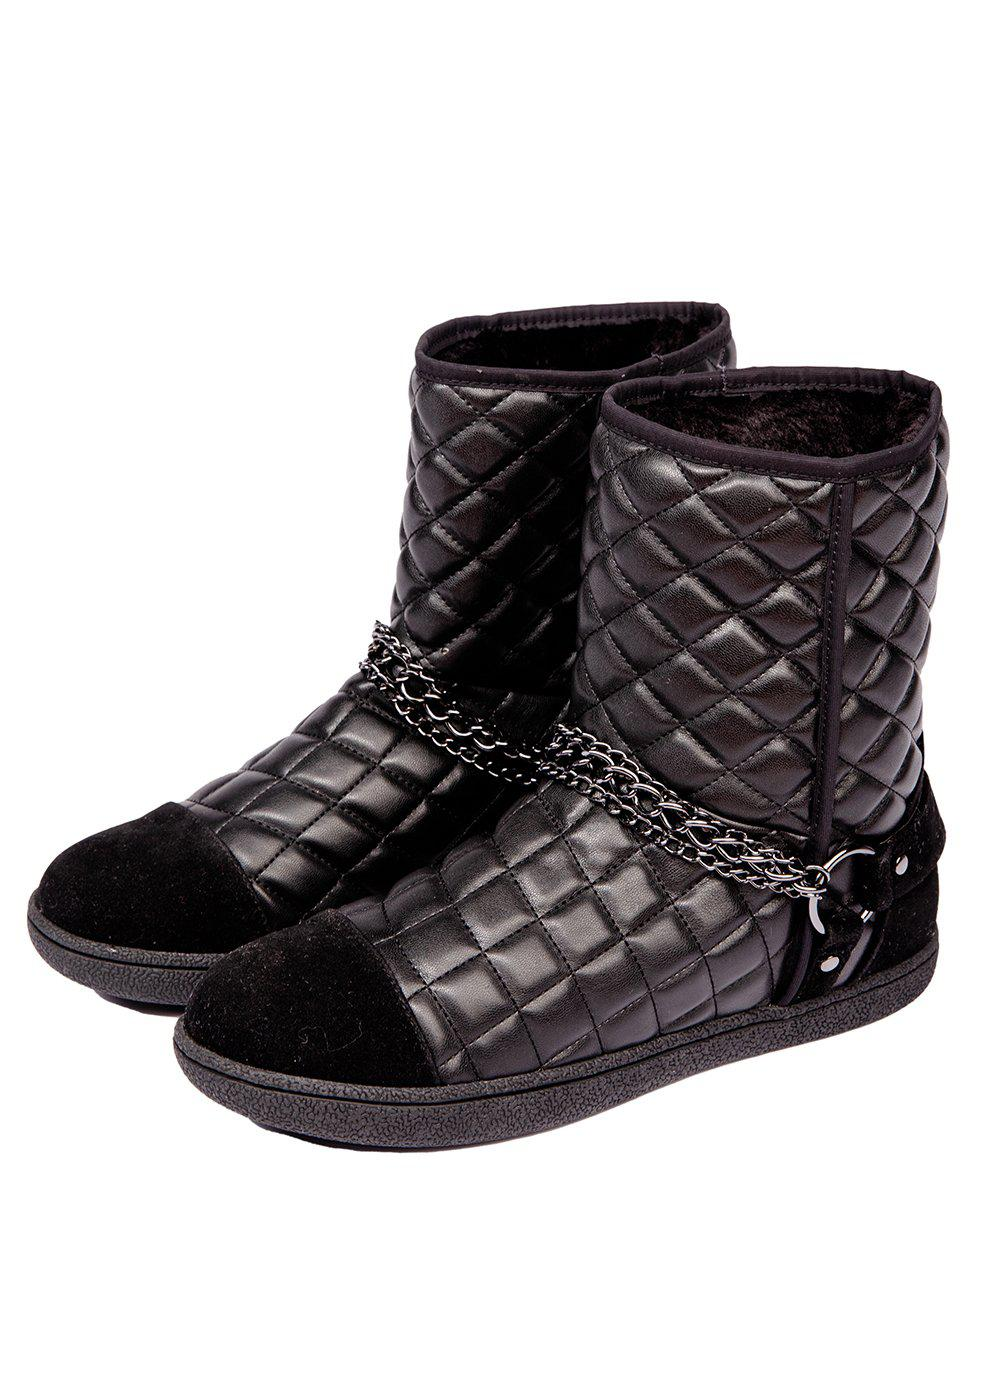 Girls Black Winter Boots-Location